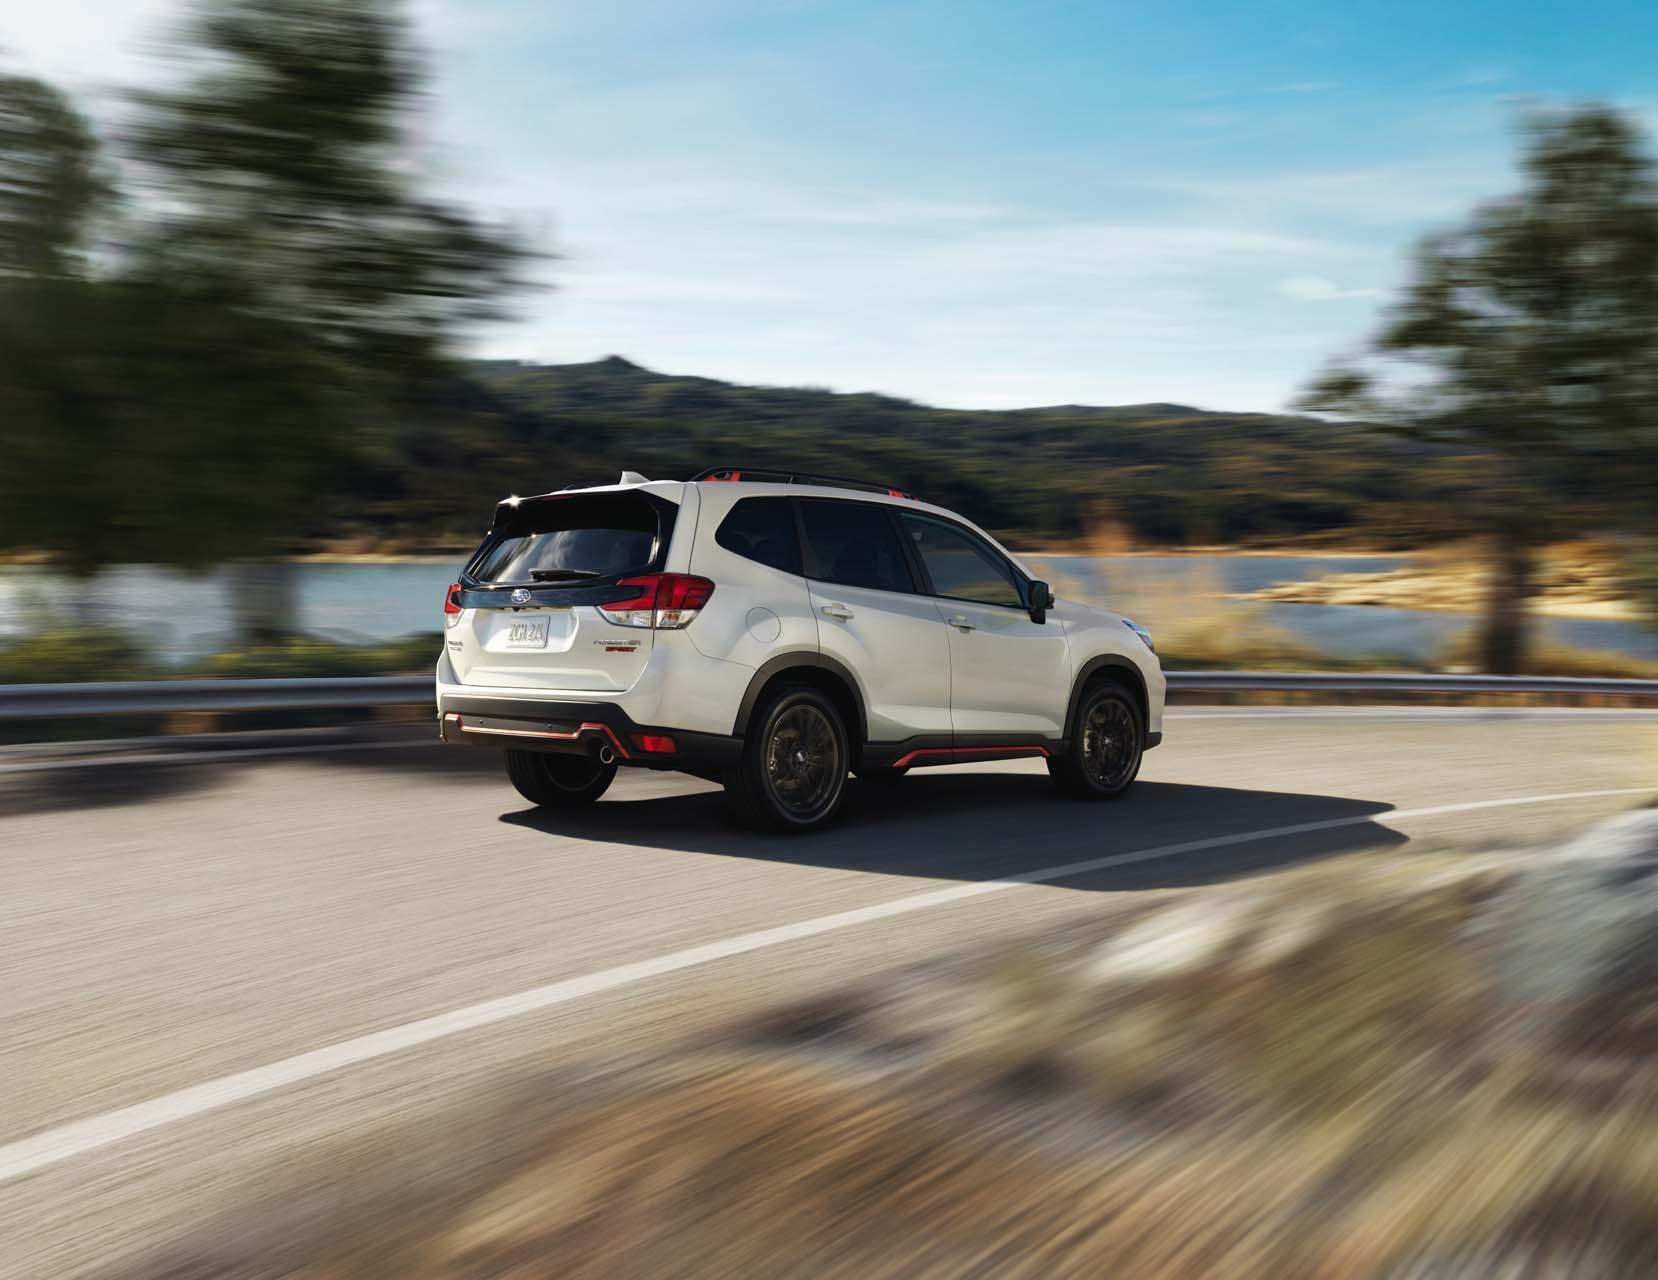 27 Best Review The 2019 Subaru Forester Sport Concept Prices with The 2019 Subaru Forester Sport Concept